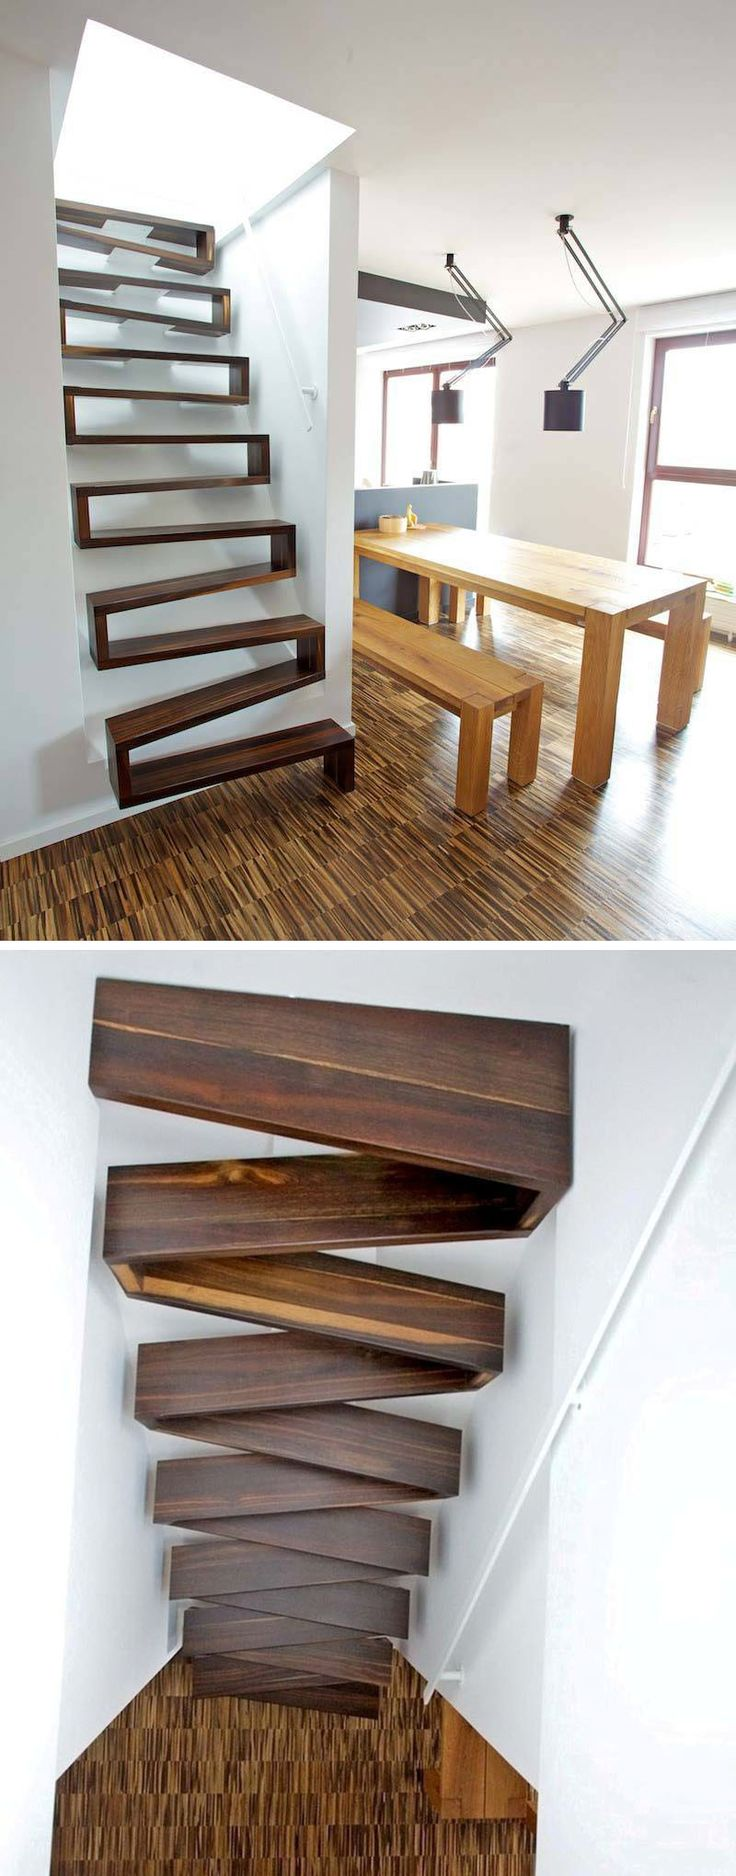 80 best Furniture design images on Pinterest | Home ideas ...